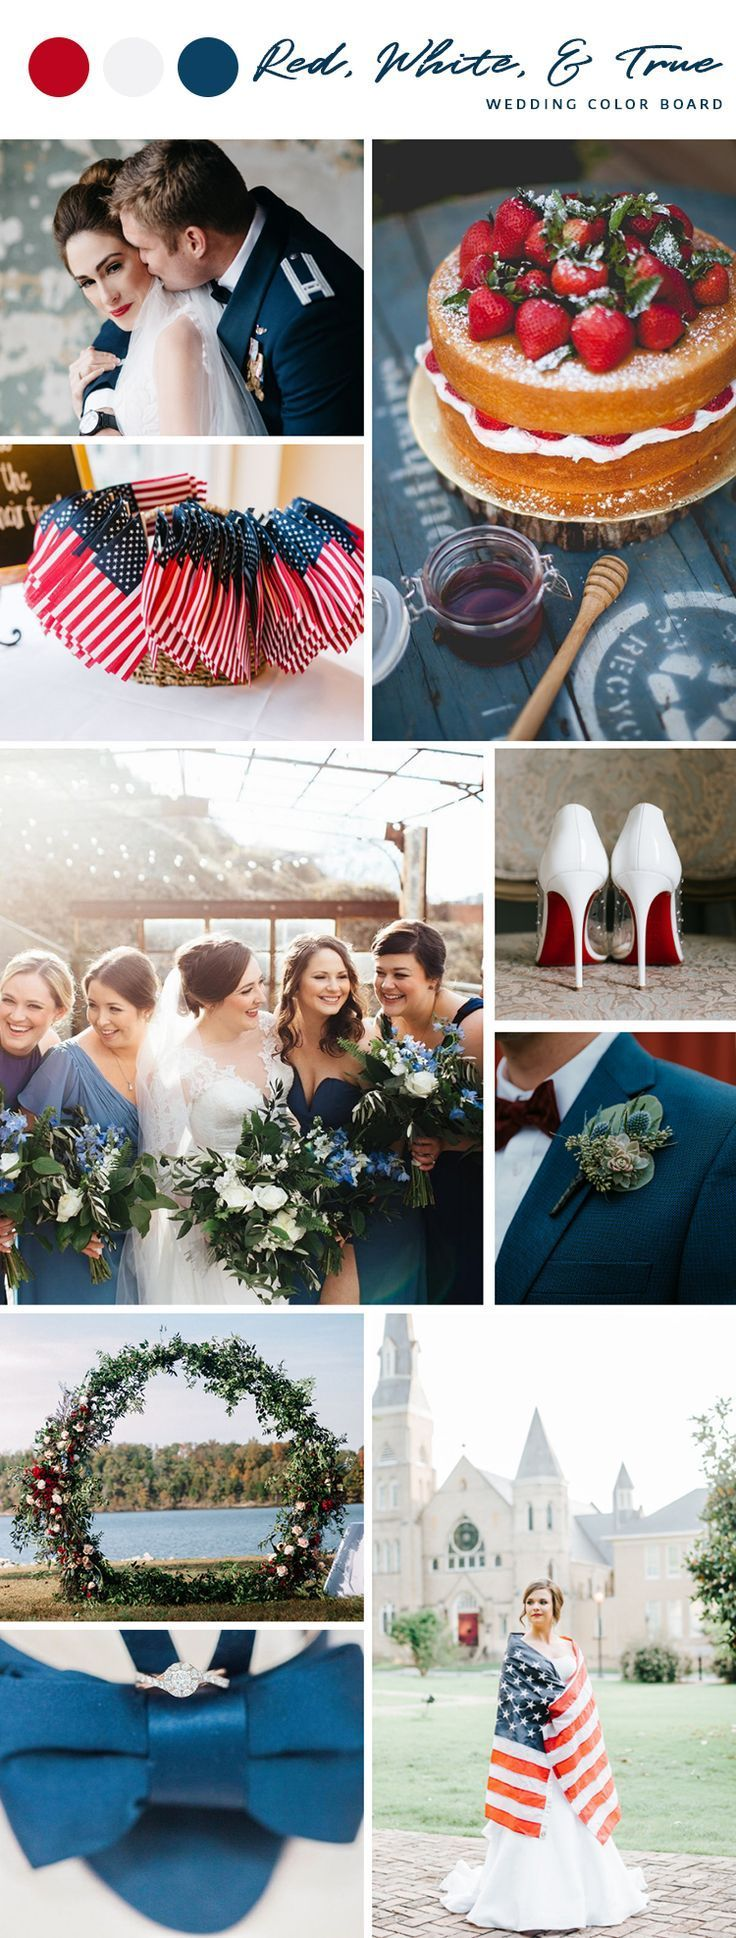 Red White & True Fourth of July Wedding Color Board July